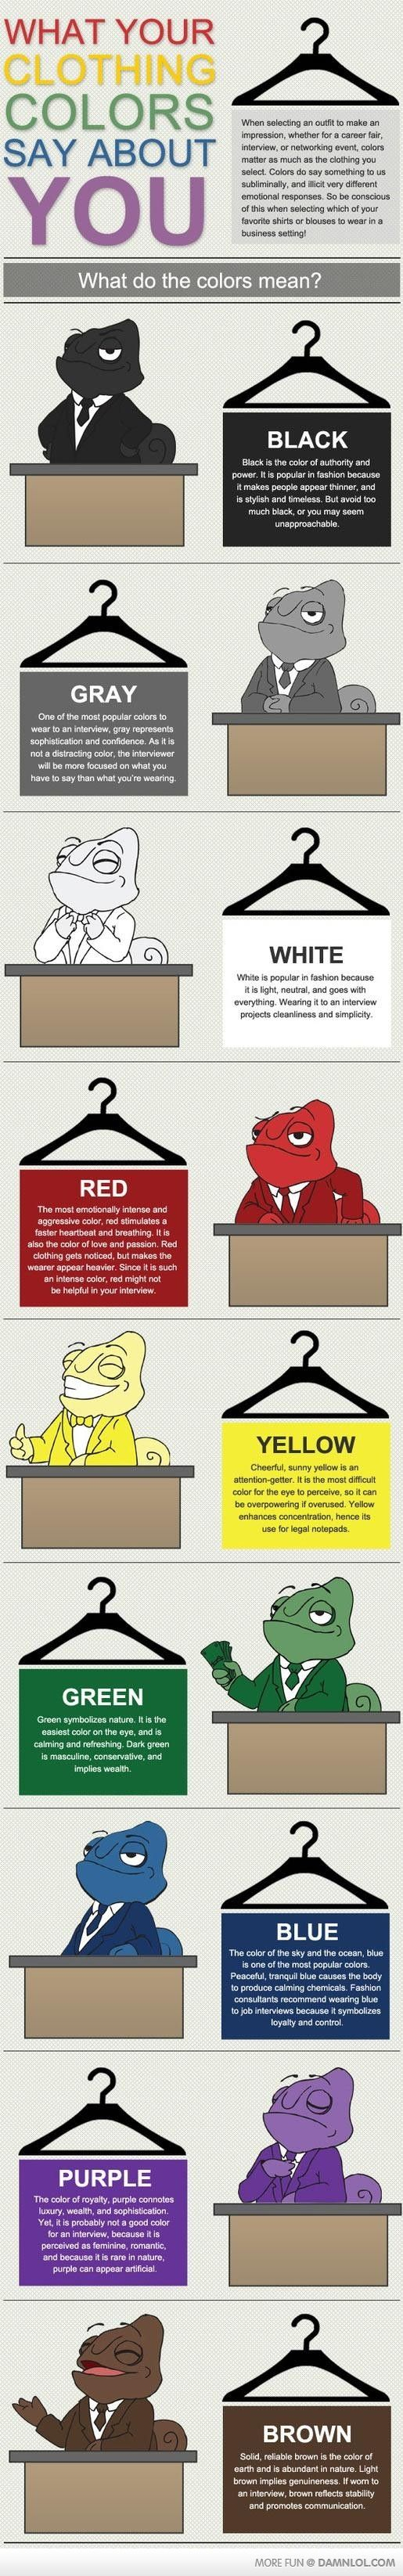 best images about interview office attire men what your clothing colours say about you some helpful advice here about what to wear